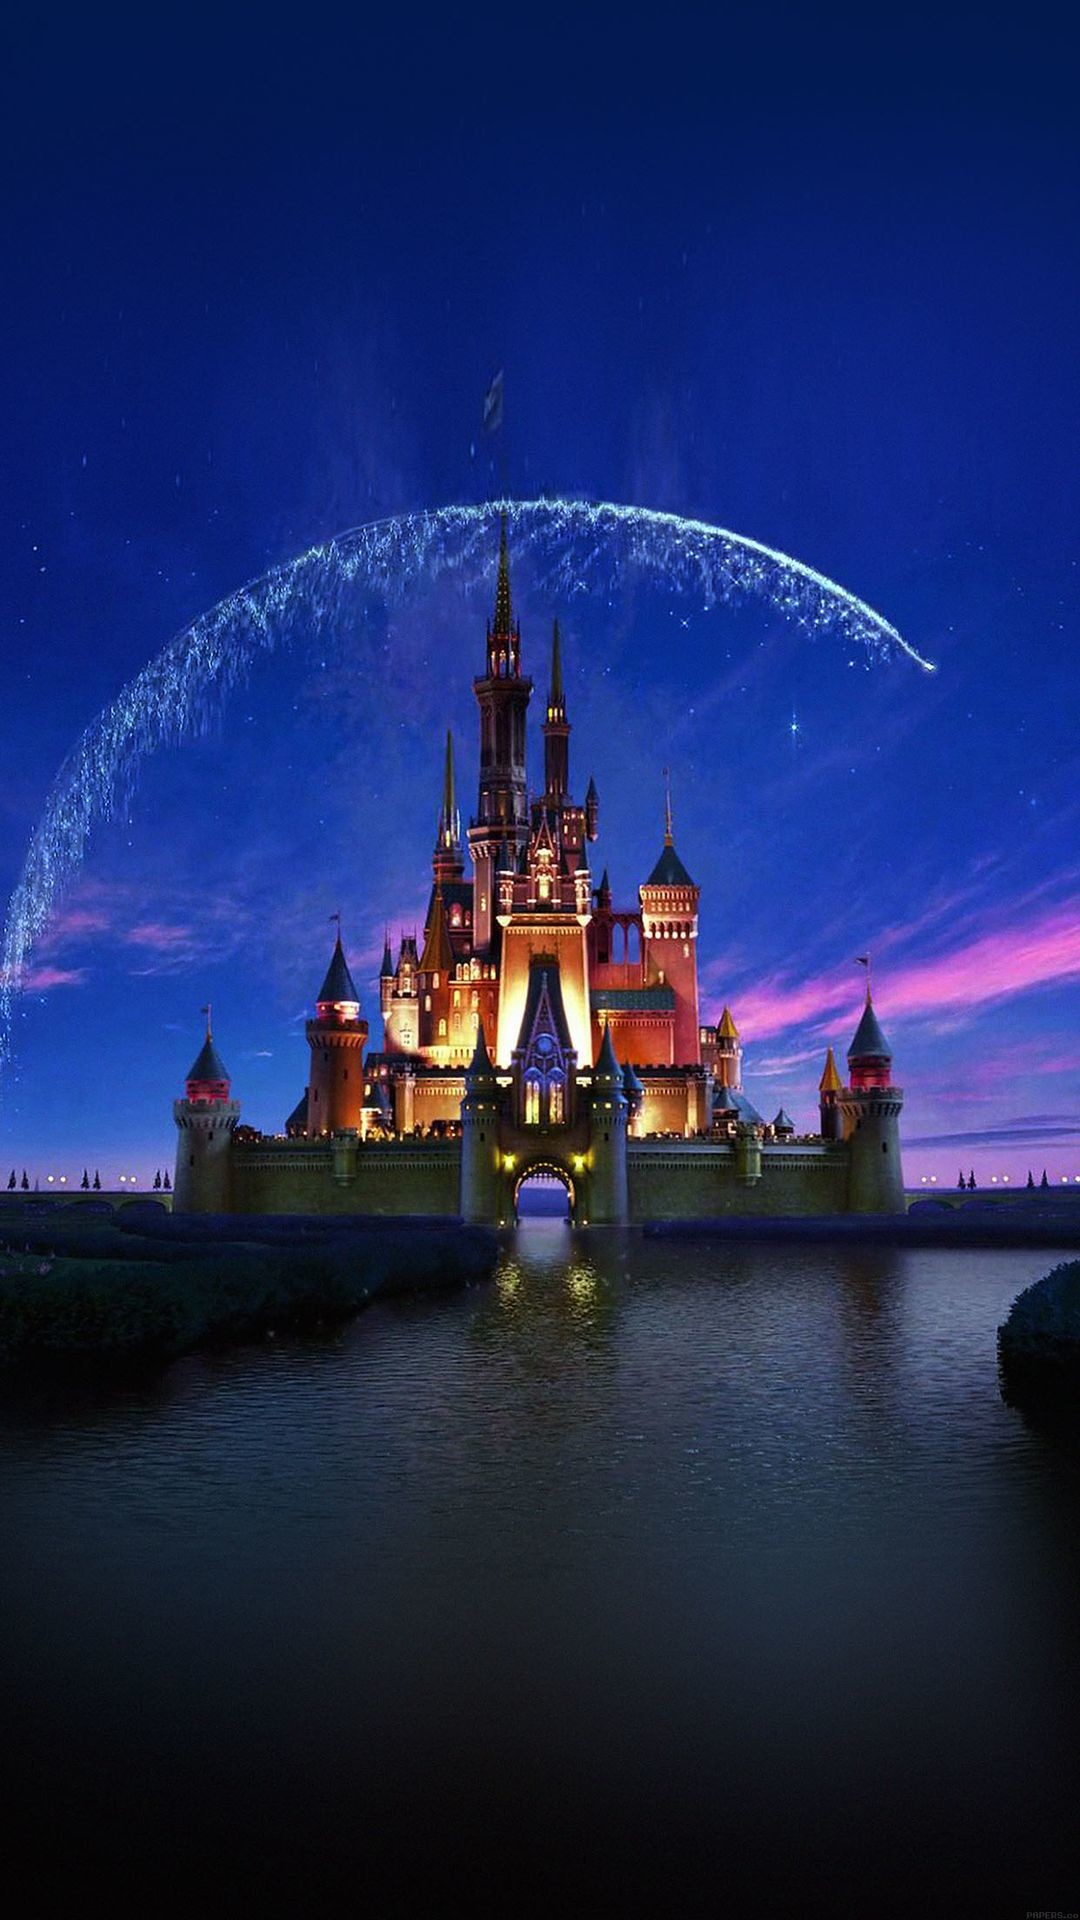 1080x1920 Tap image for more iPhone Disney wallpaper! Disney castle artwork -  @mobile9 | Wallpapers